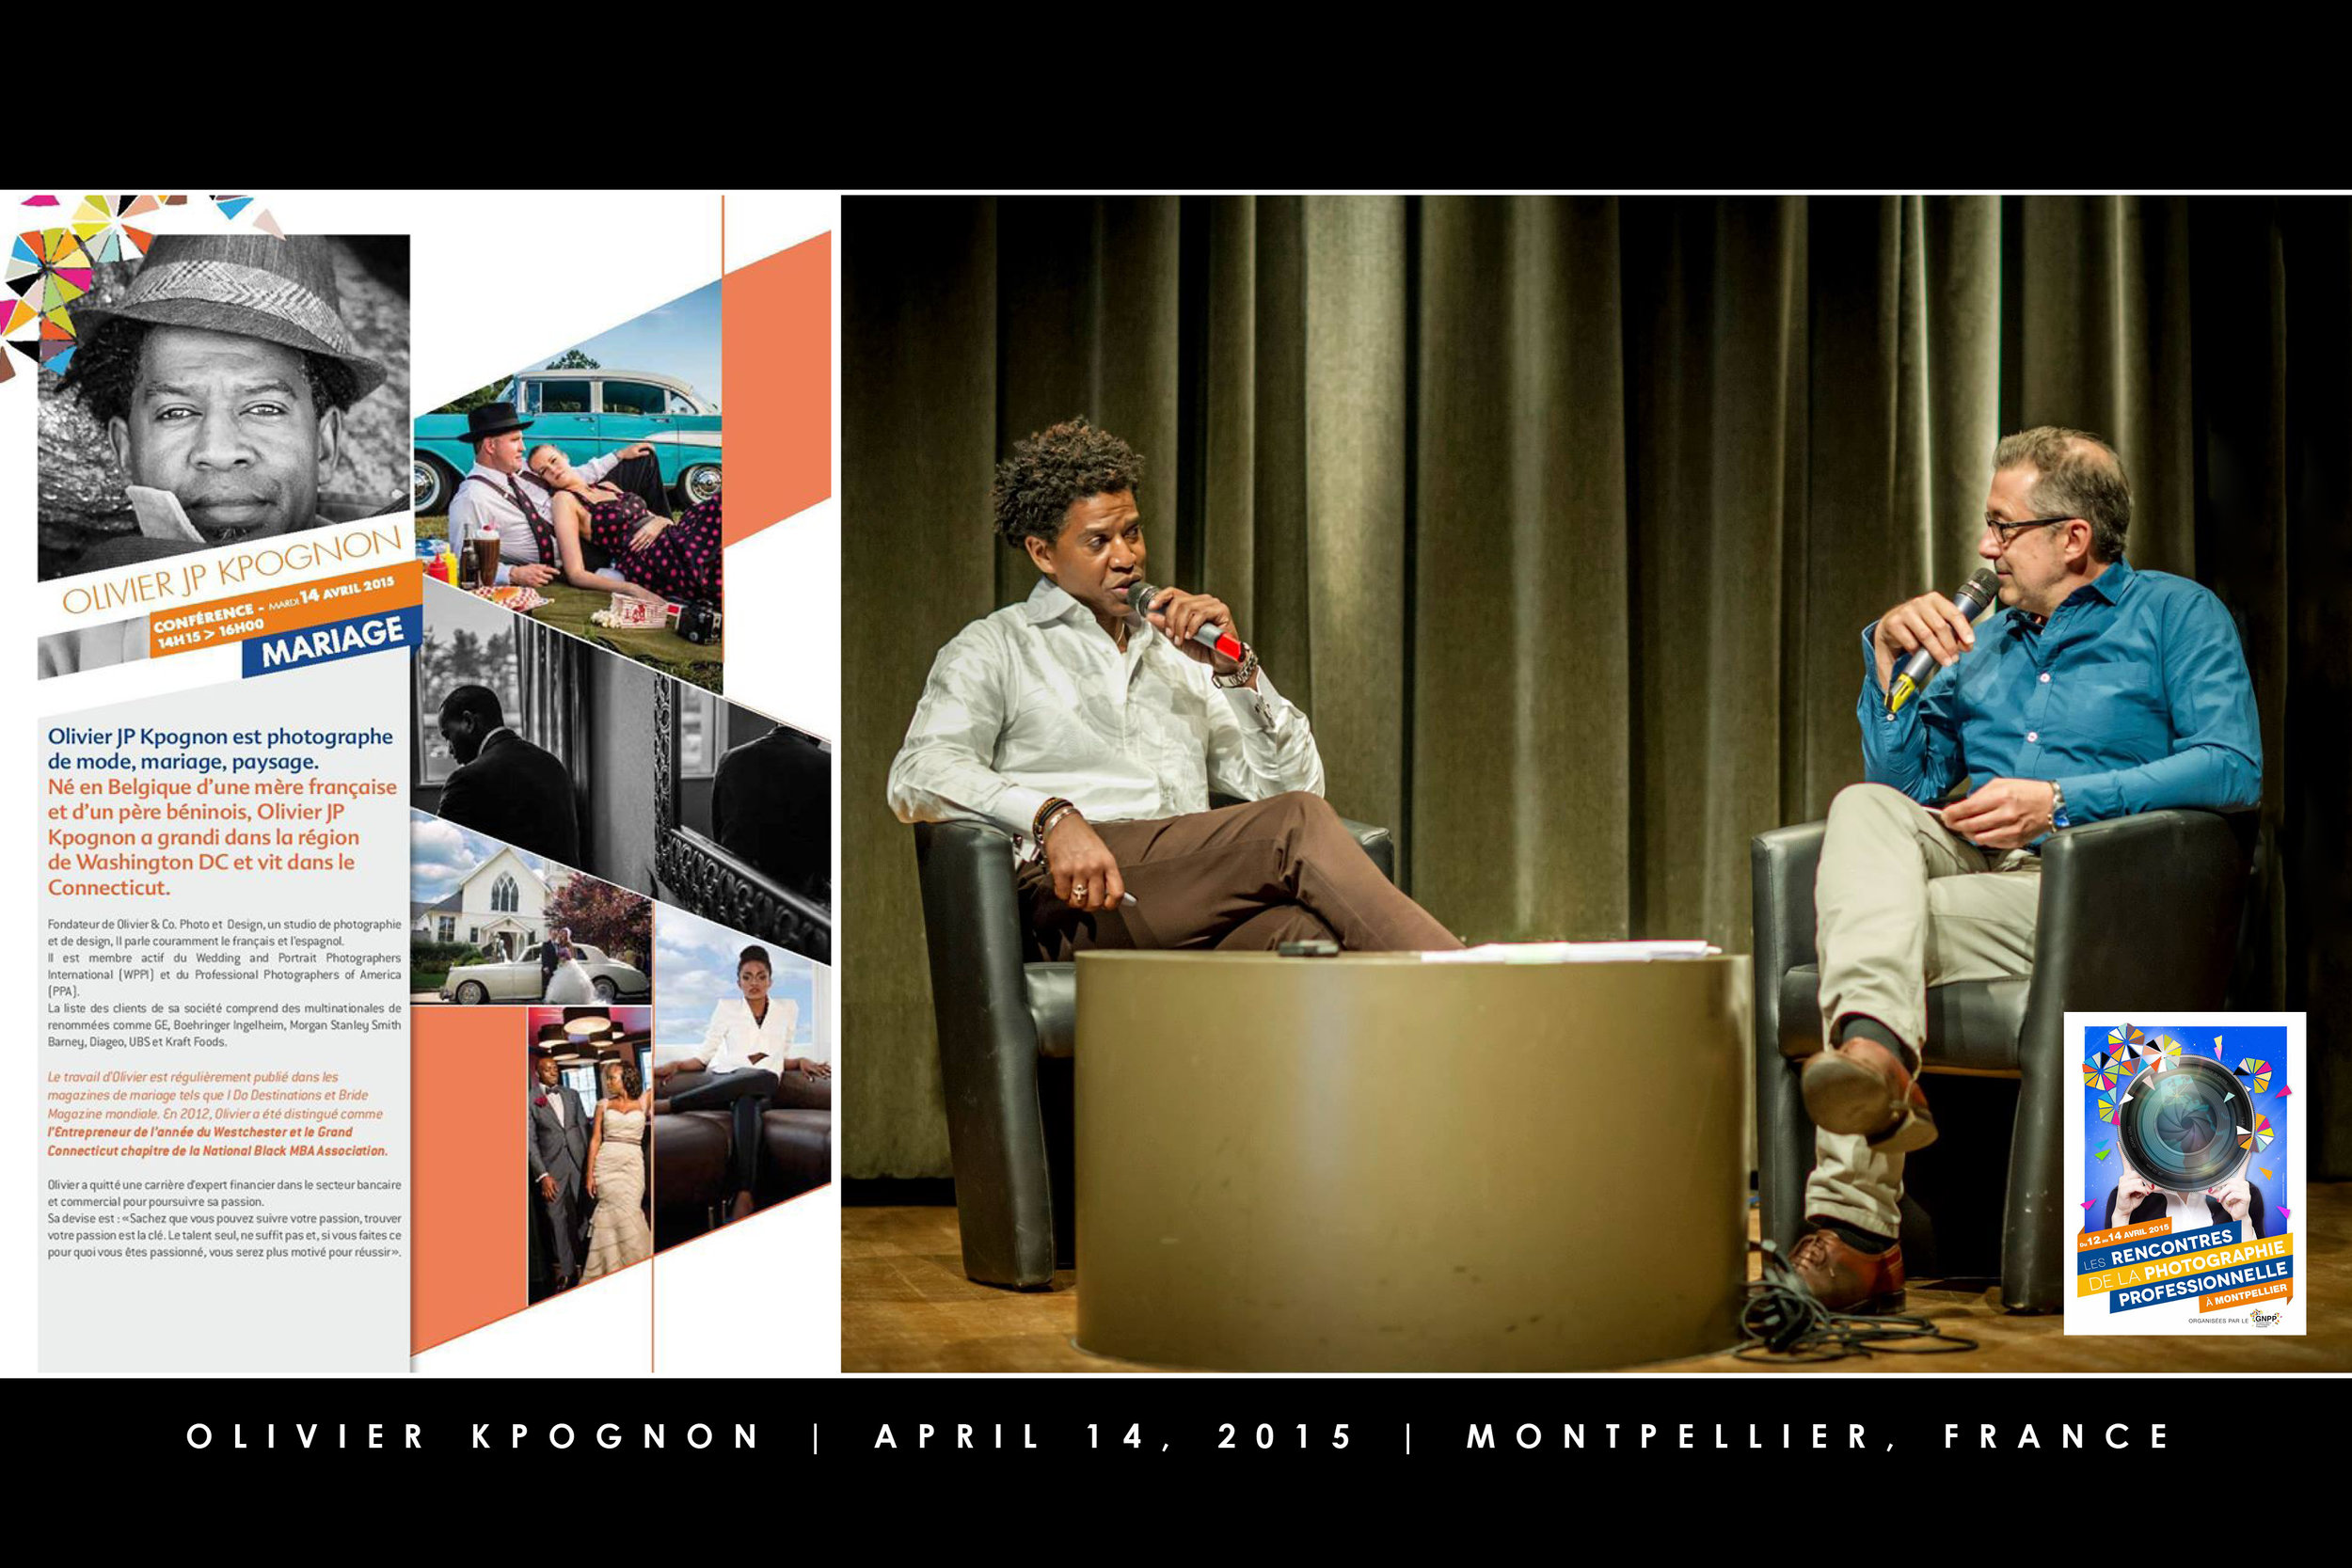 Keynote speaker for a photography symposium in Montpellier, France